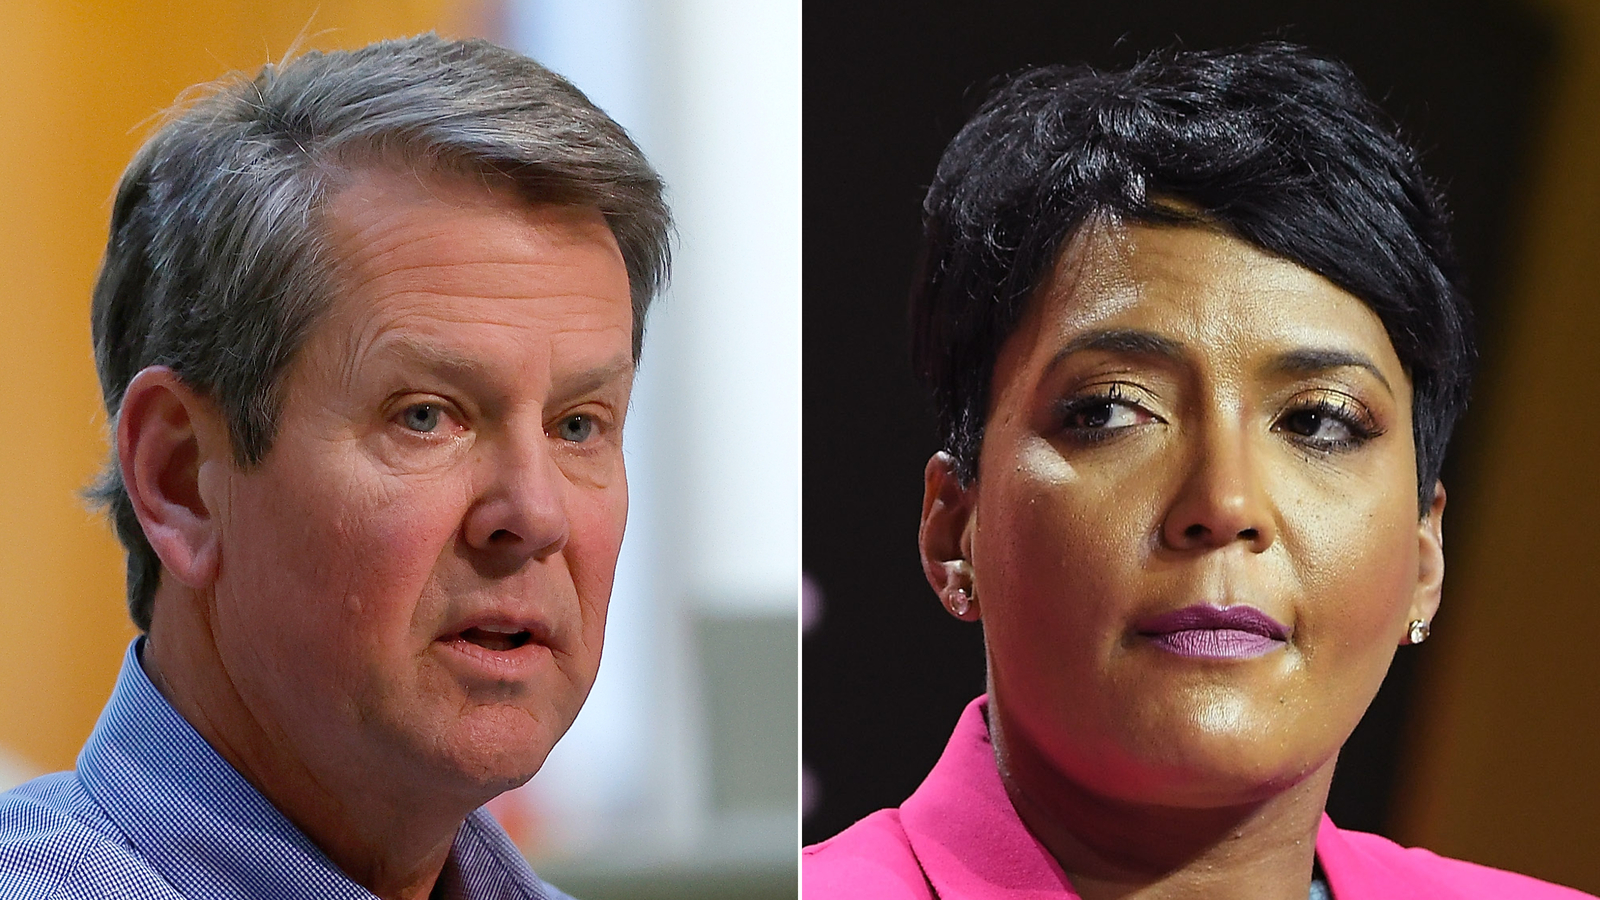 Mayors across Georgia stood behind Atlanta Mayor Keisha Lance Bottoms on July 16, 2020 after the state's governor filed a lawsuit against her over the city's mask mandate. (Getty Images via CNN)